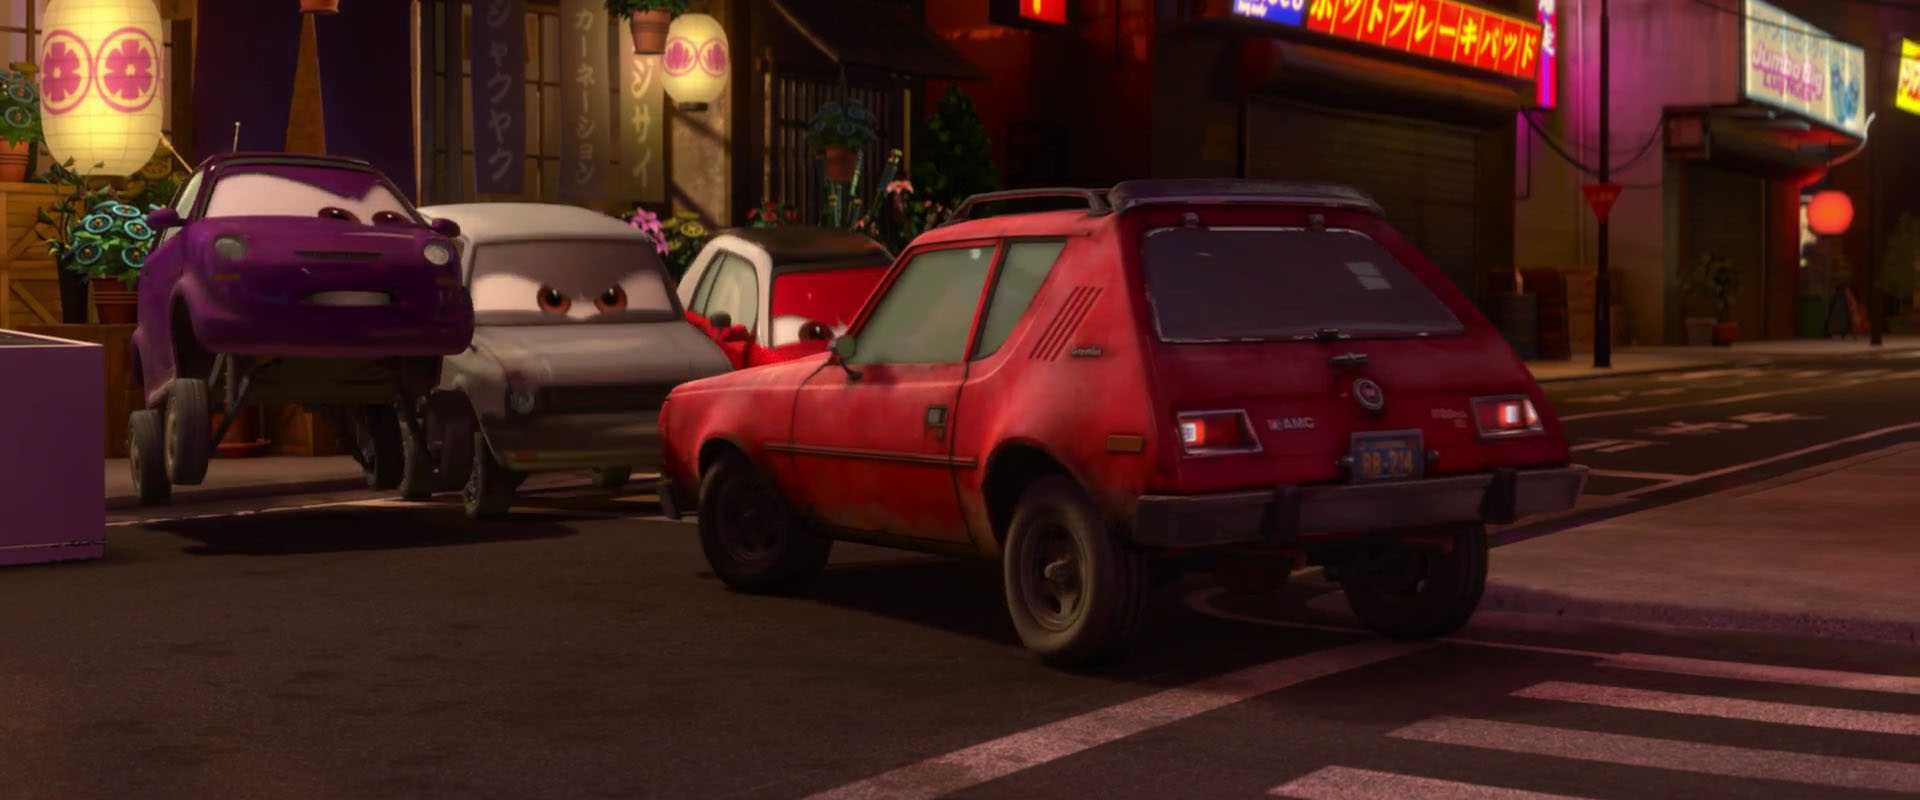 tyler-gremlin-personnage-cars-2-02